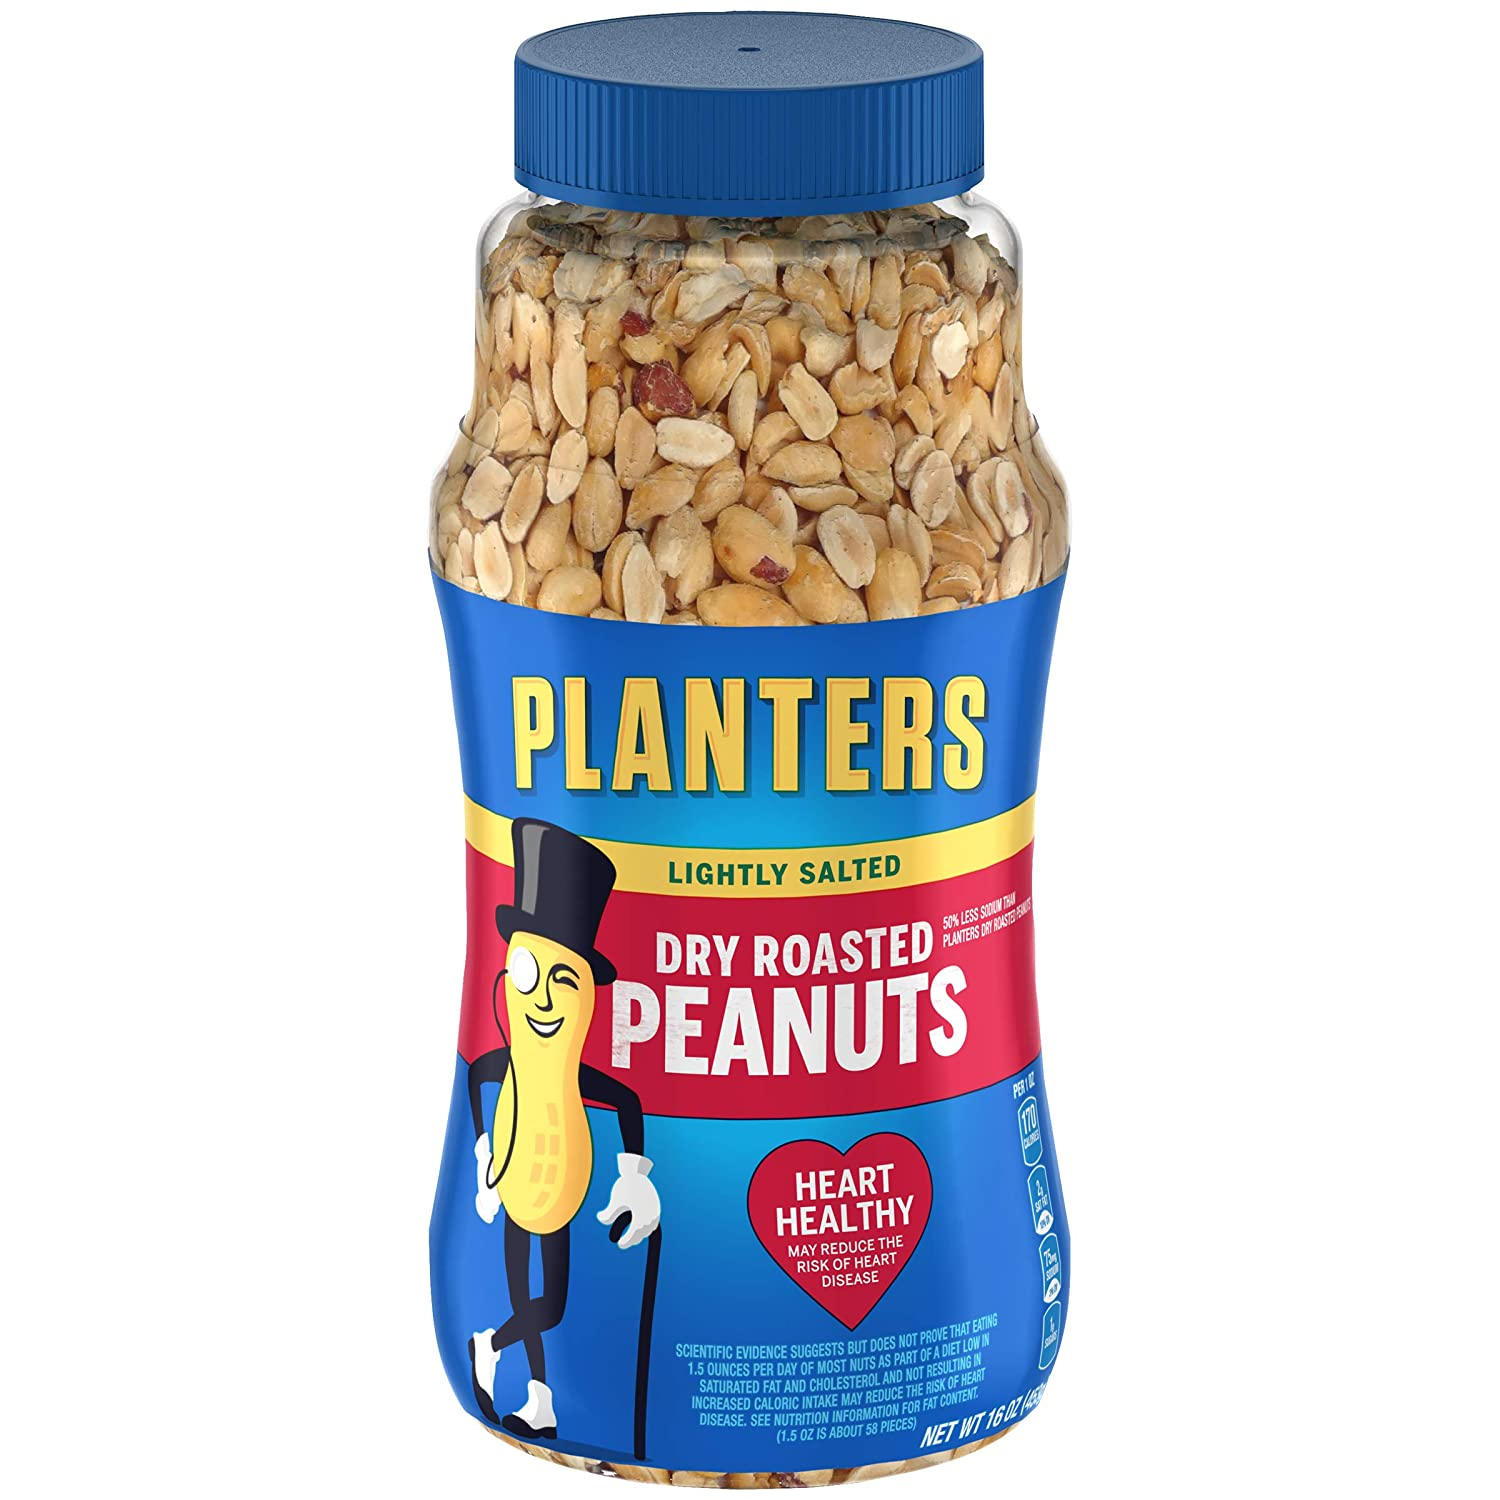 PLANTERS Lightly Salted Dry Roasted Peanuts, 16 oz. Resealable Jar | Peanut Snack | Great Movie Snack, Active Lifestyle Snack and Party Size Snack | Kosher Peanuts